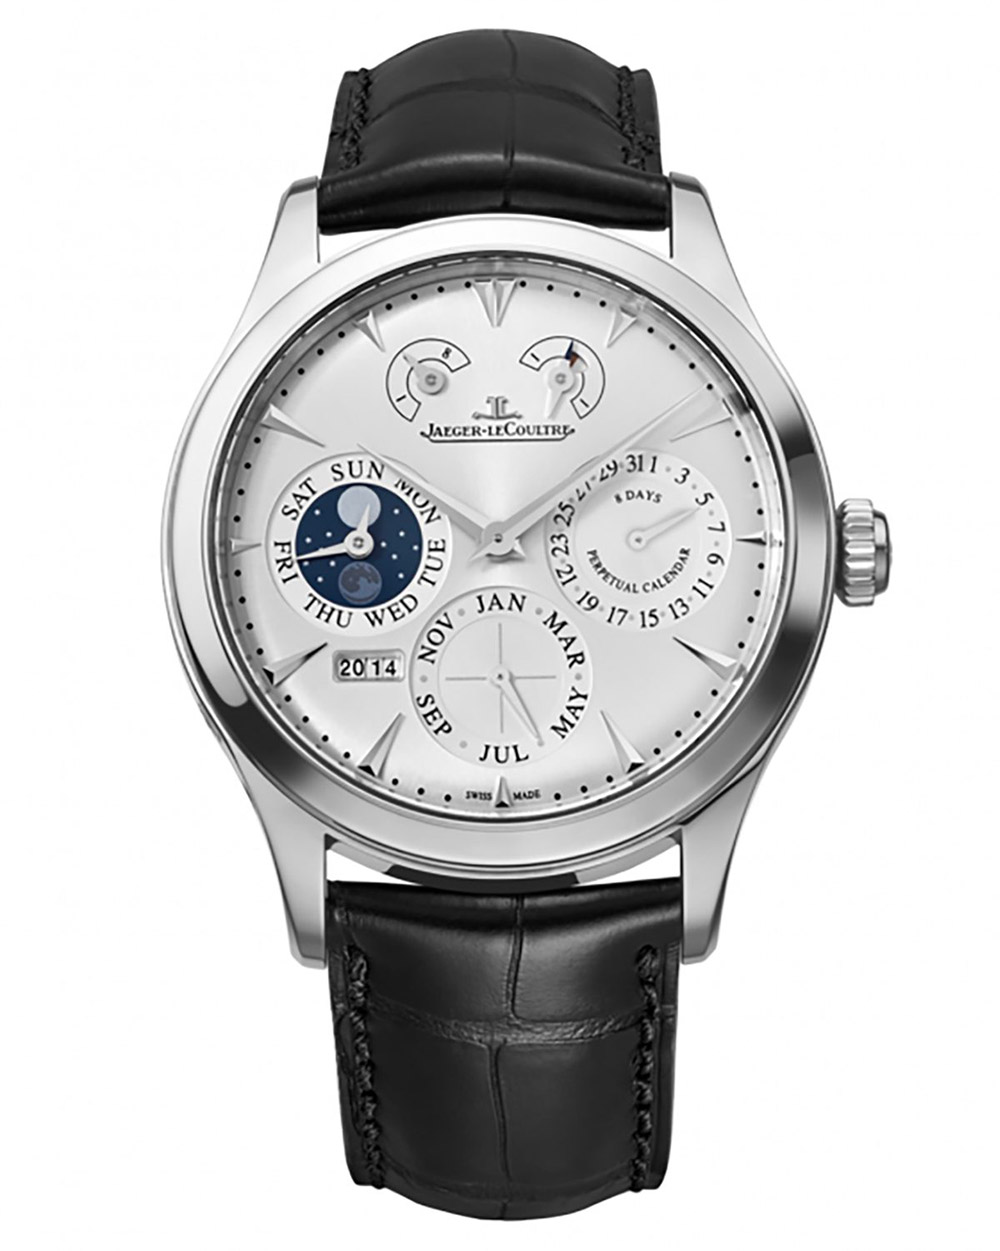 the jaeger lecoultre master eight days perpetual stainless steel watch - 男团BTS成员都爱哪些高级名表?